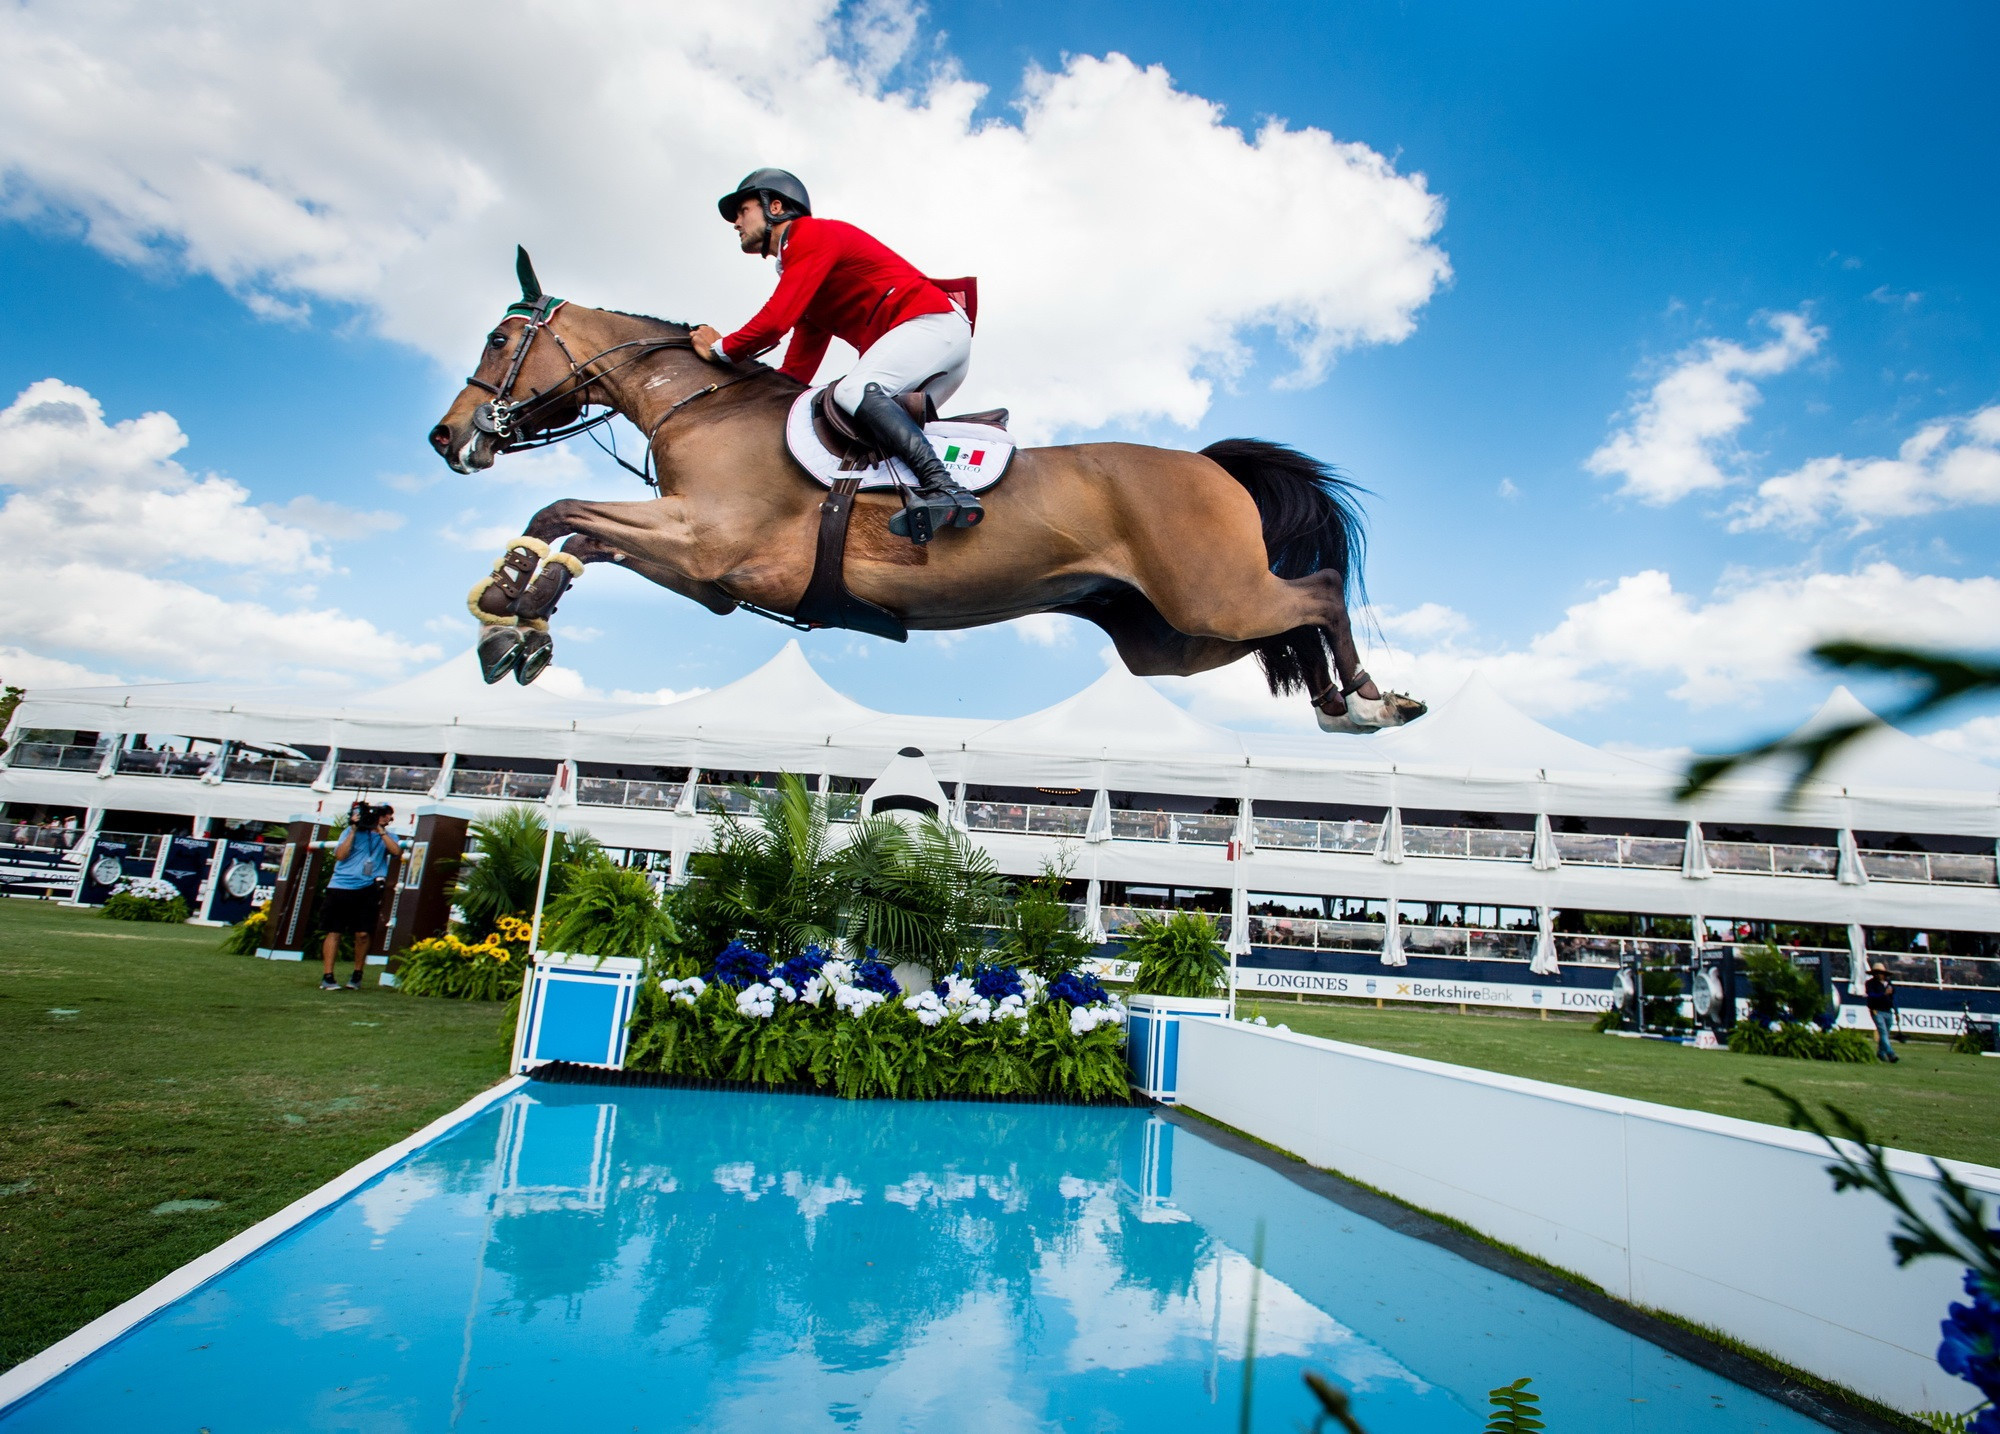 Mexico triumph at opening FEI Jumping Nations Cup of season